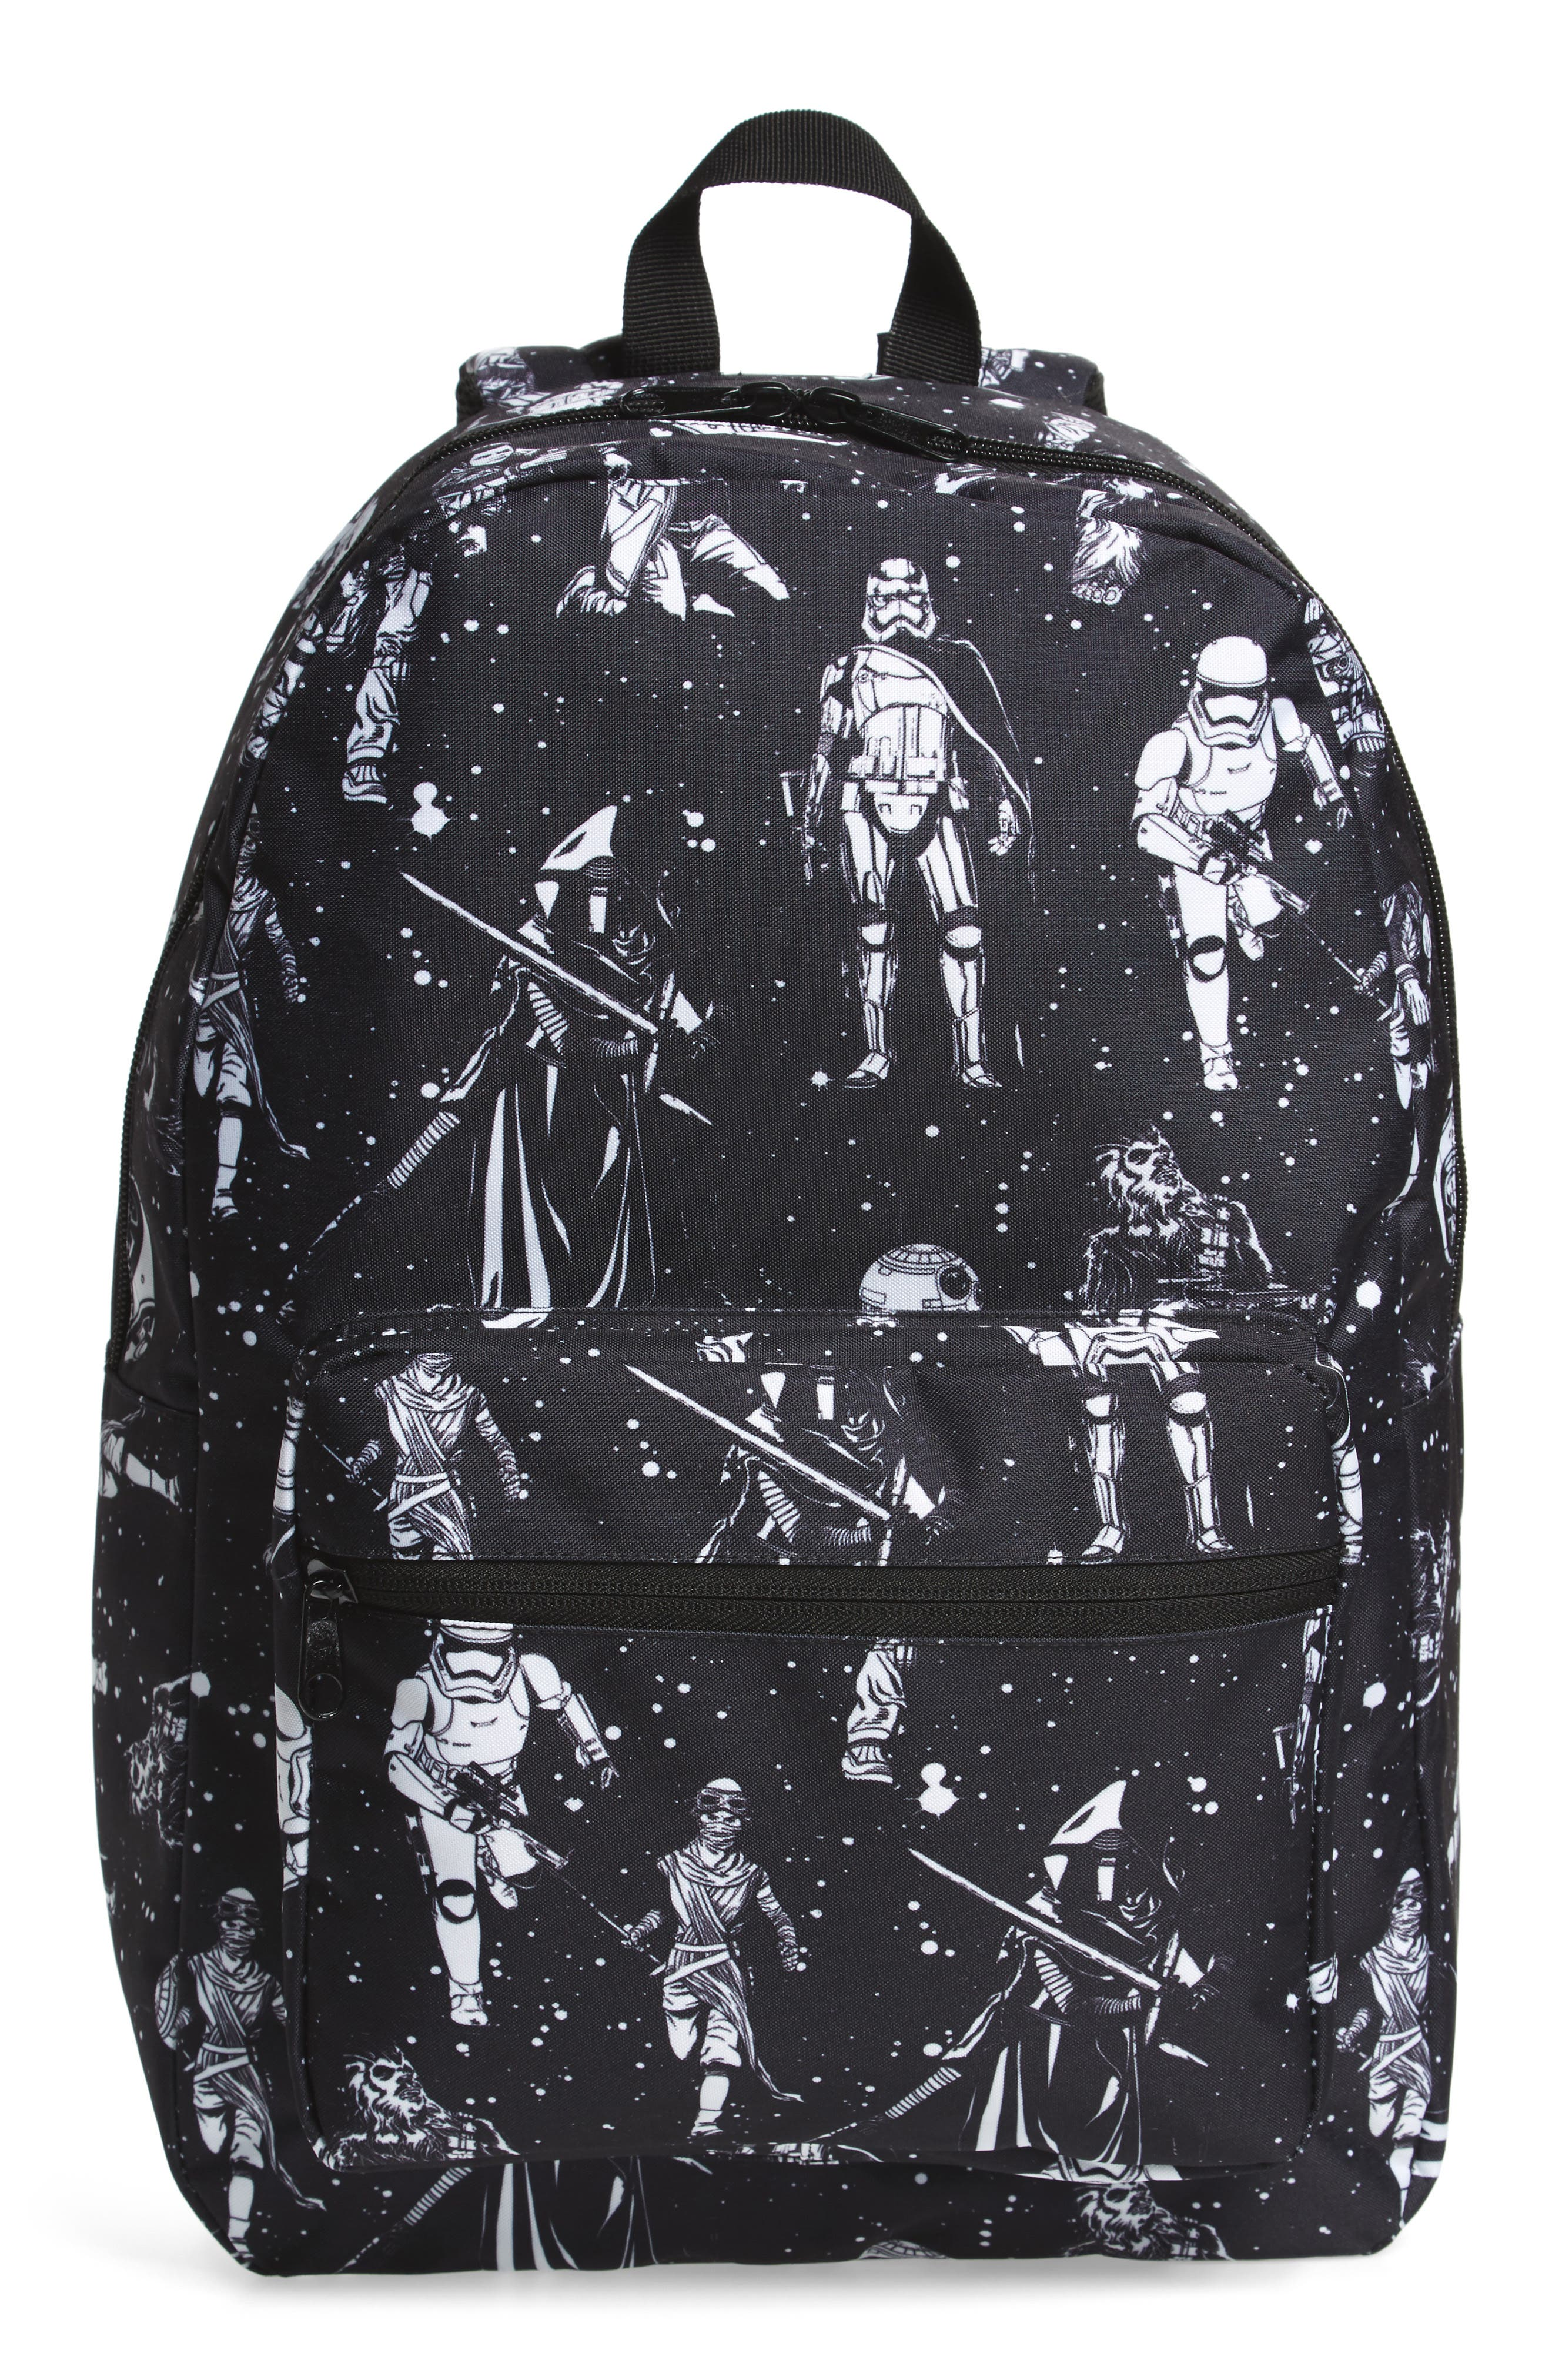 The Force Awakens Black & White Space Backpack,                             Main thumbnail 1, color,                             001